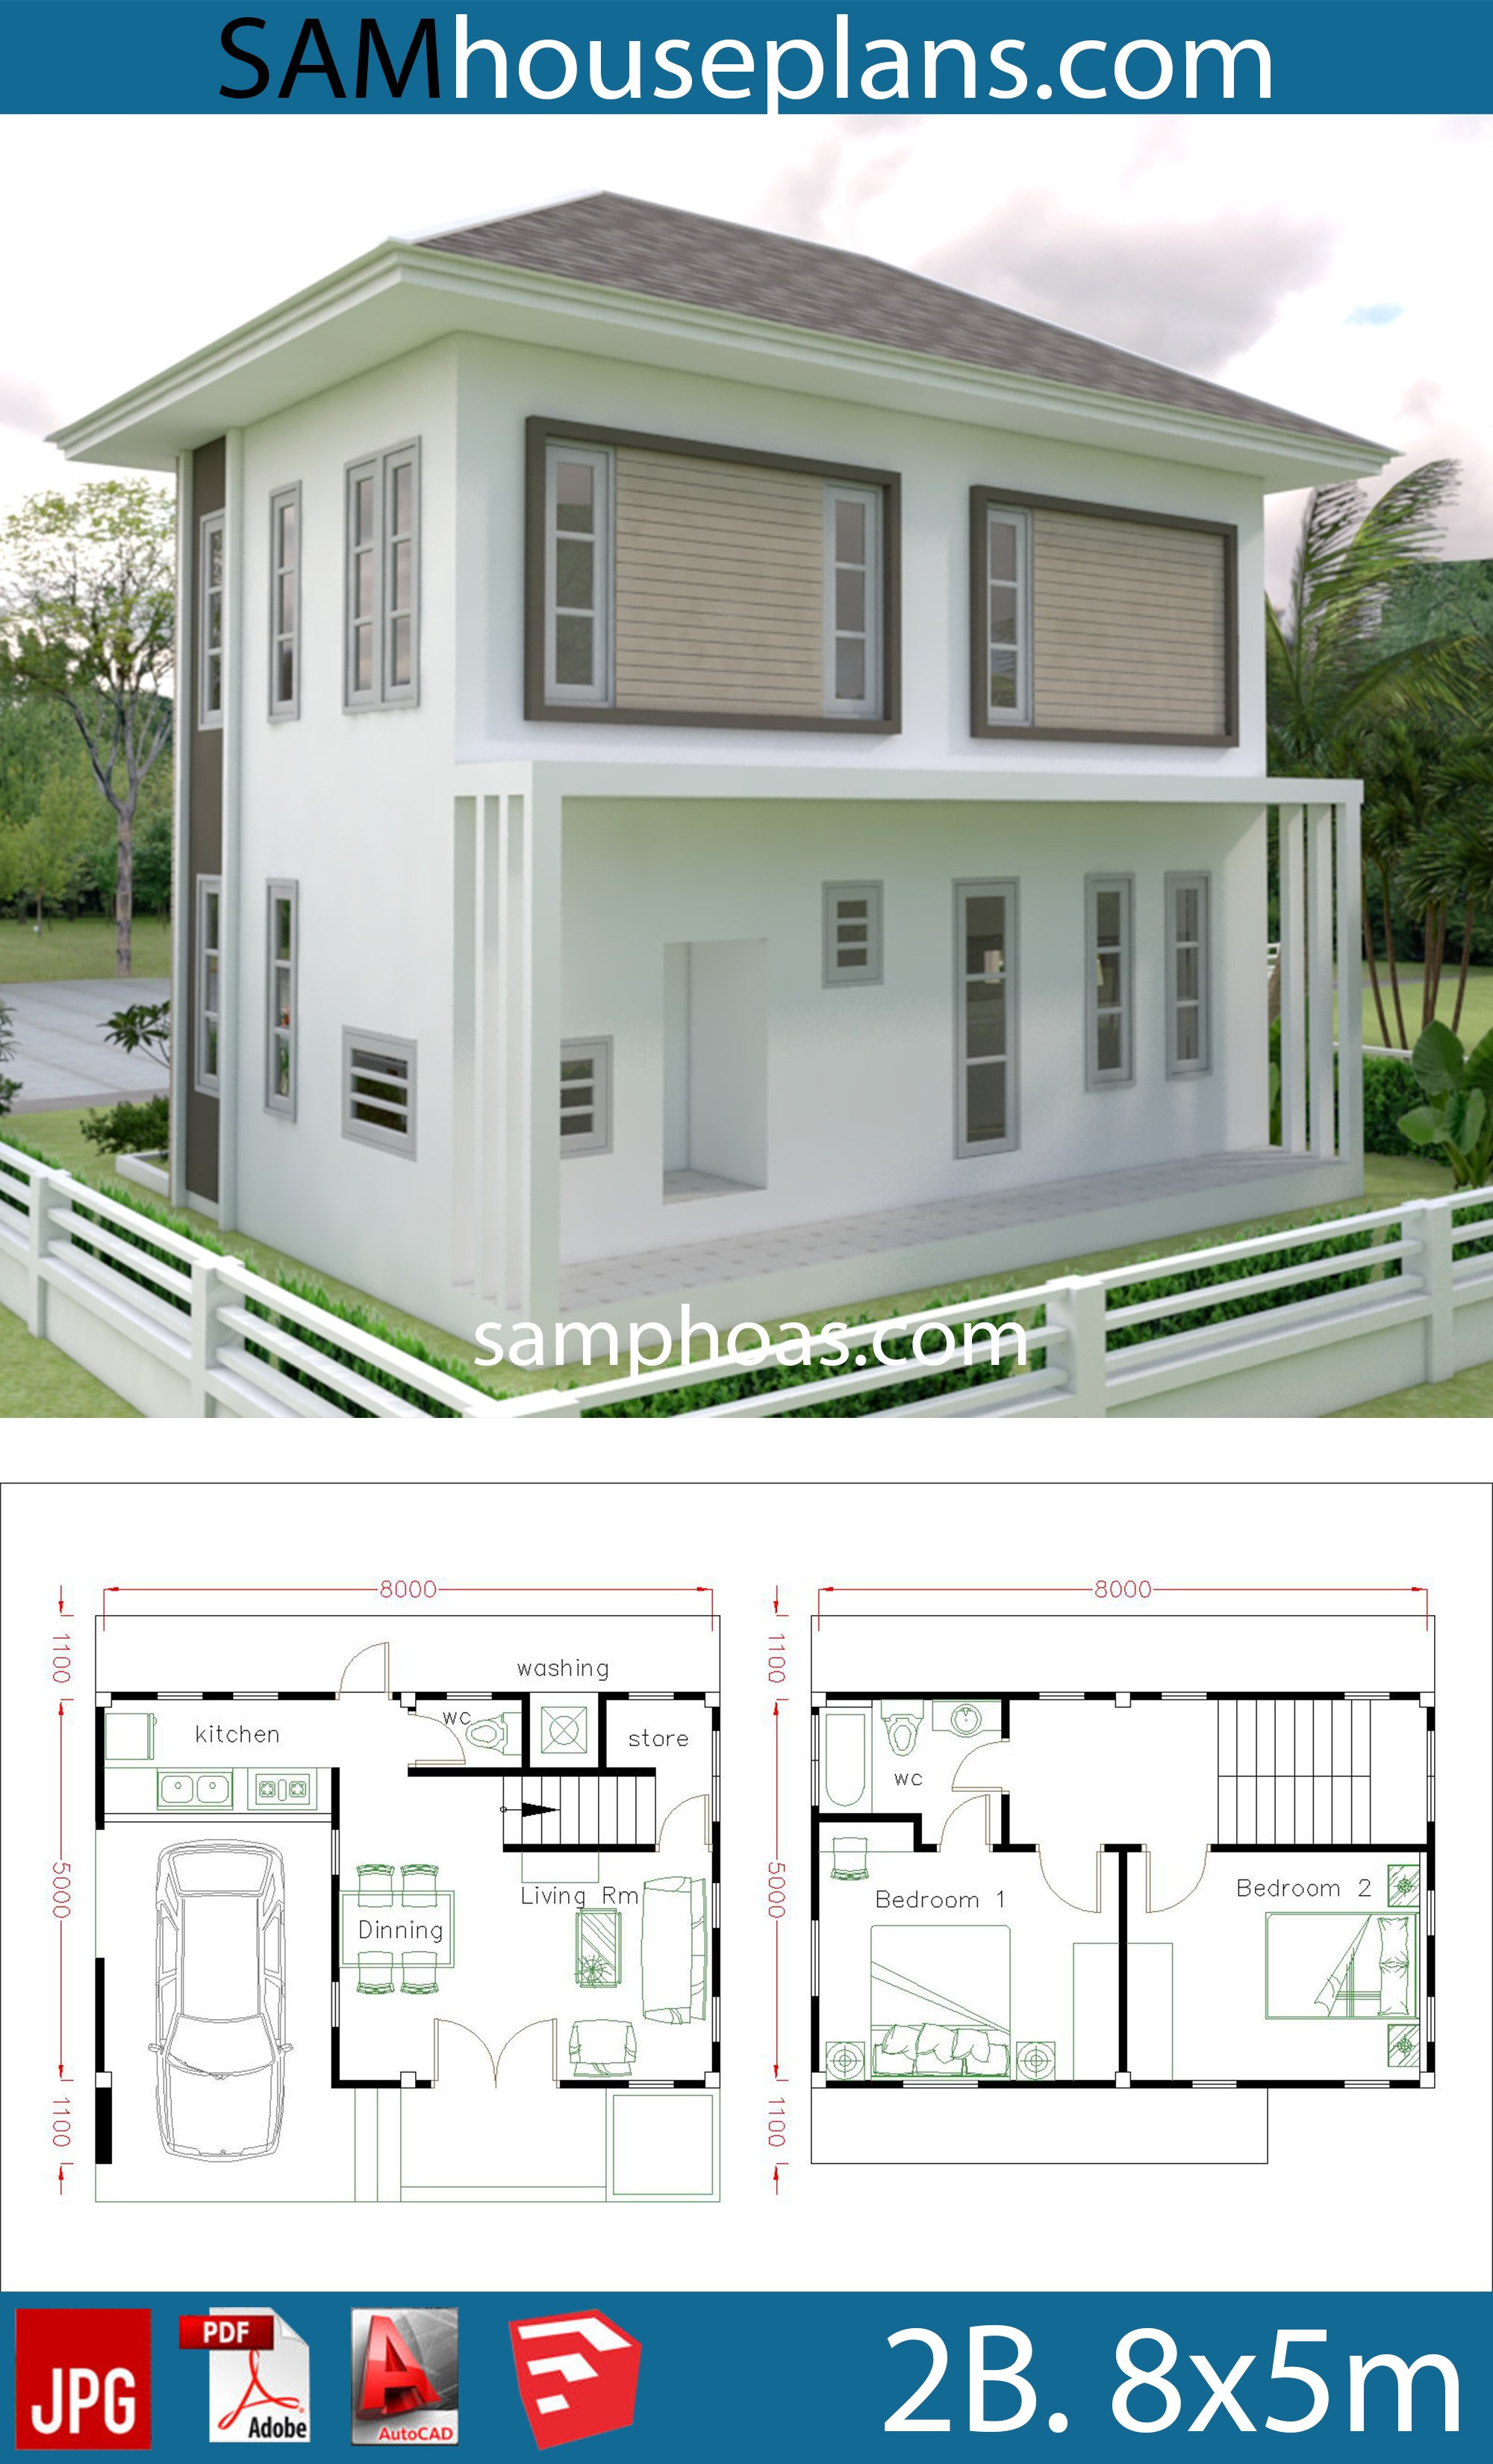 small home design plan 8x5m with 2 bedrooms